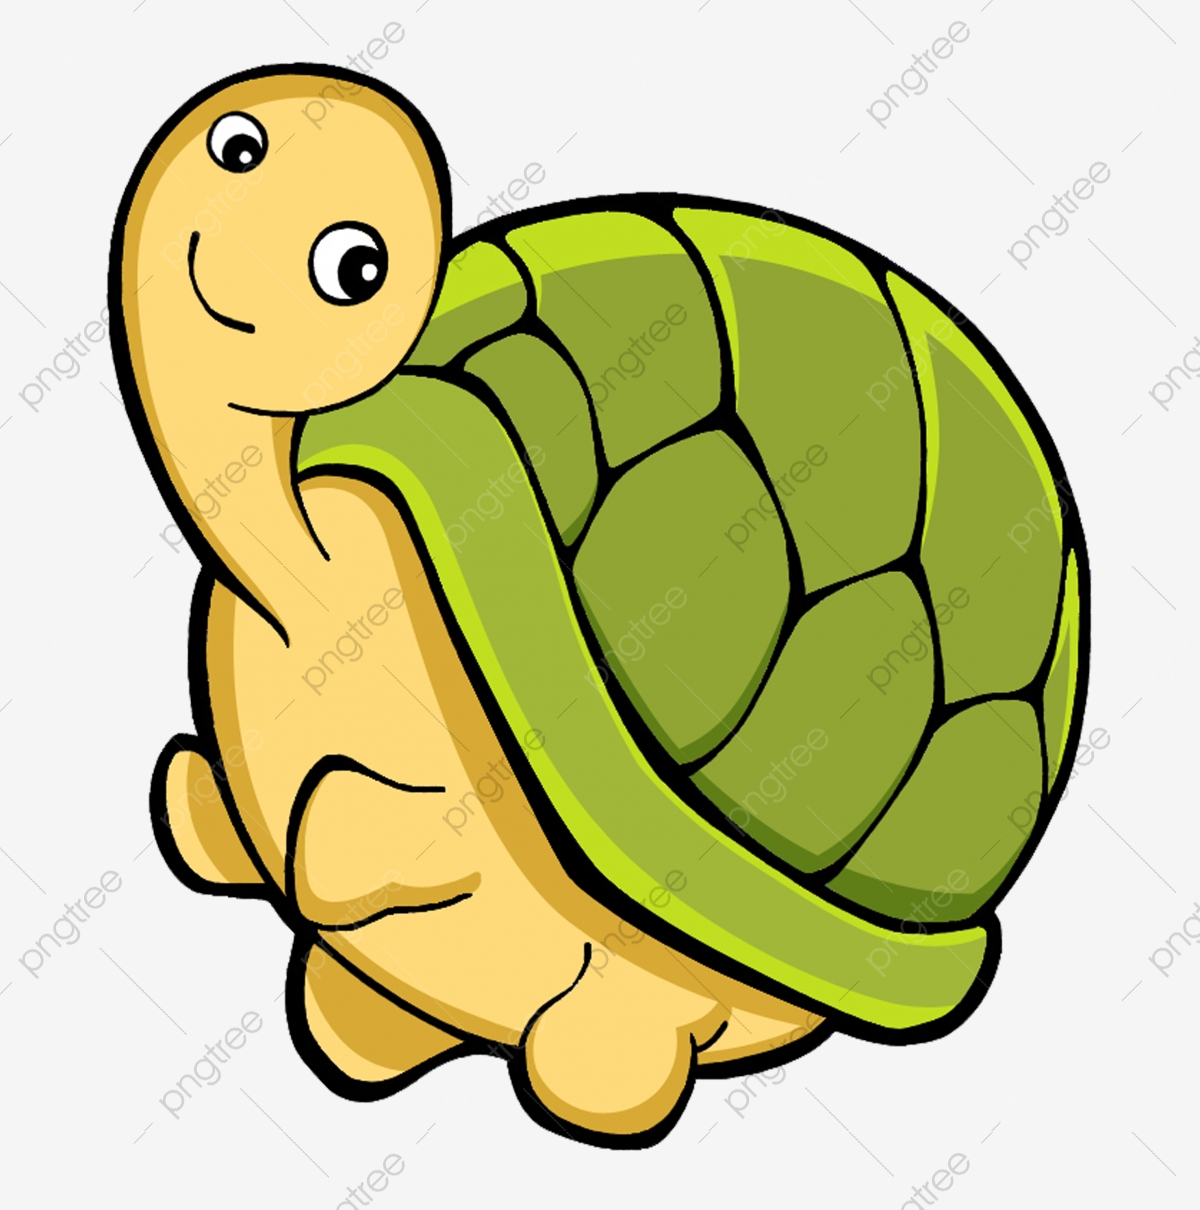 Hand Drawn Cartoon Running Cartoon Turtle, Cartoon Clipart.